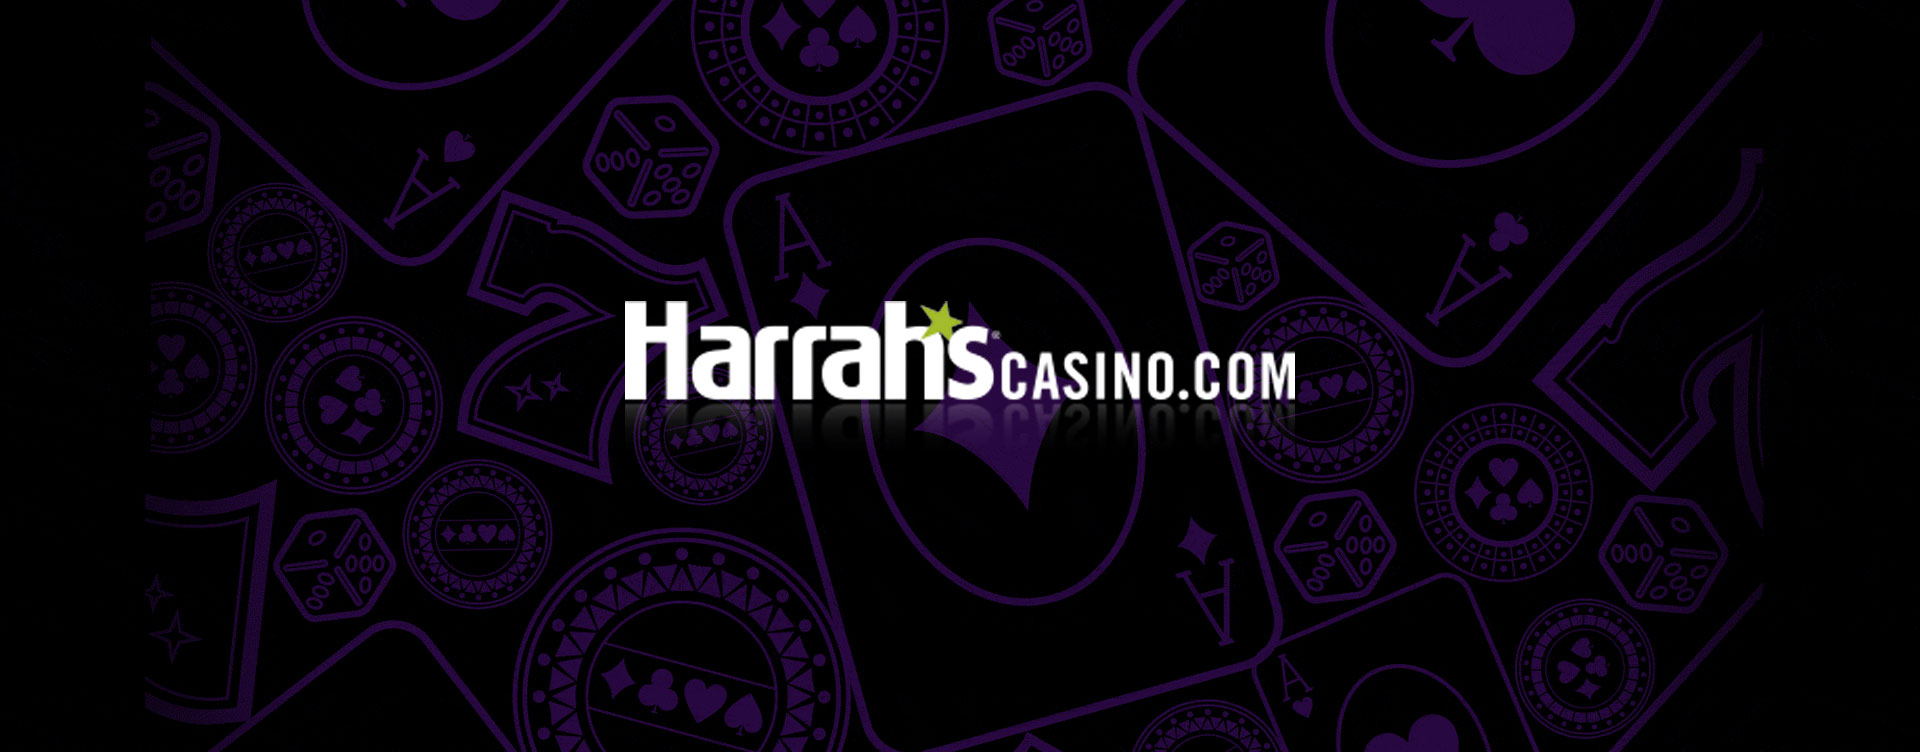 Harrahs Online Casino Giving $10 Free and $300 Matching Bonus!